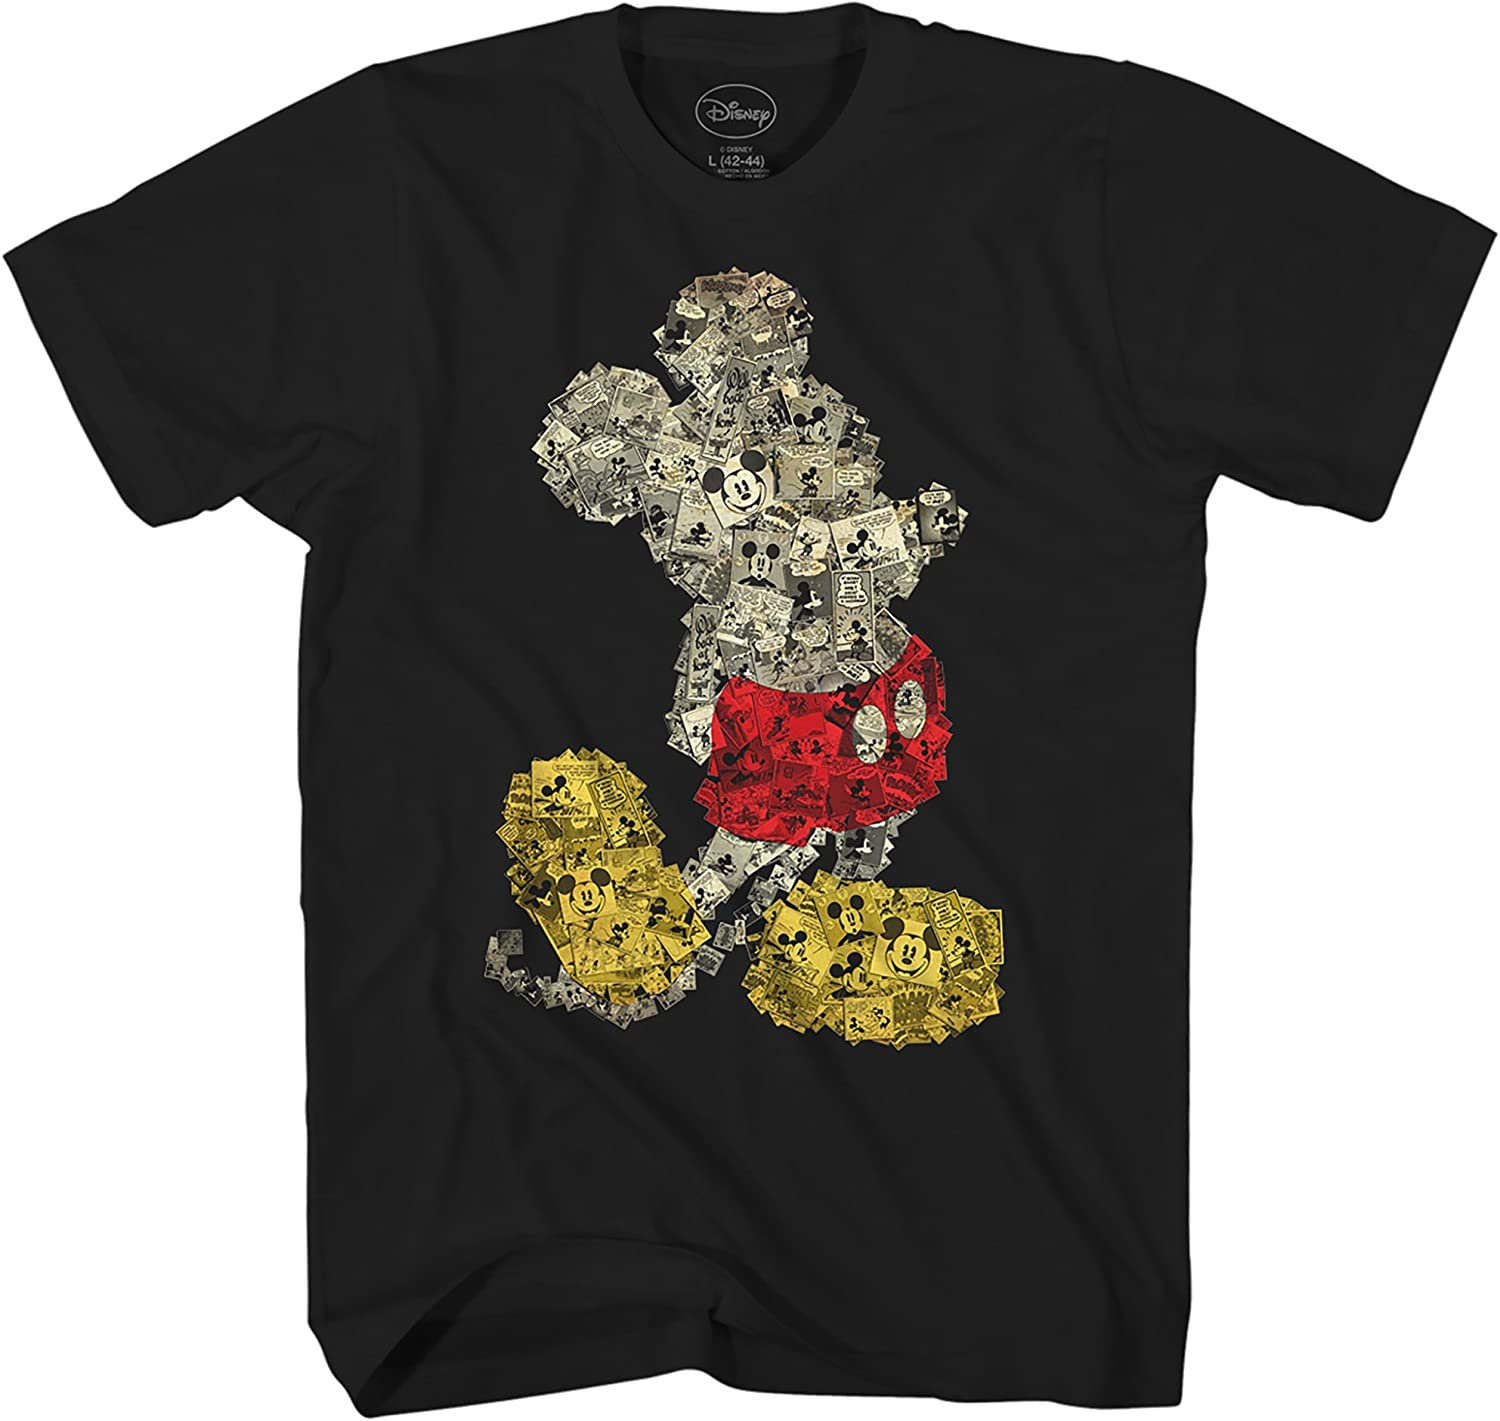 Disney Mickey Mouse Collage Disneyland World Adult Tee Graphic T-Shirt for Men Tshirt